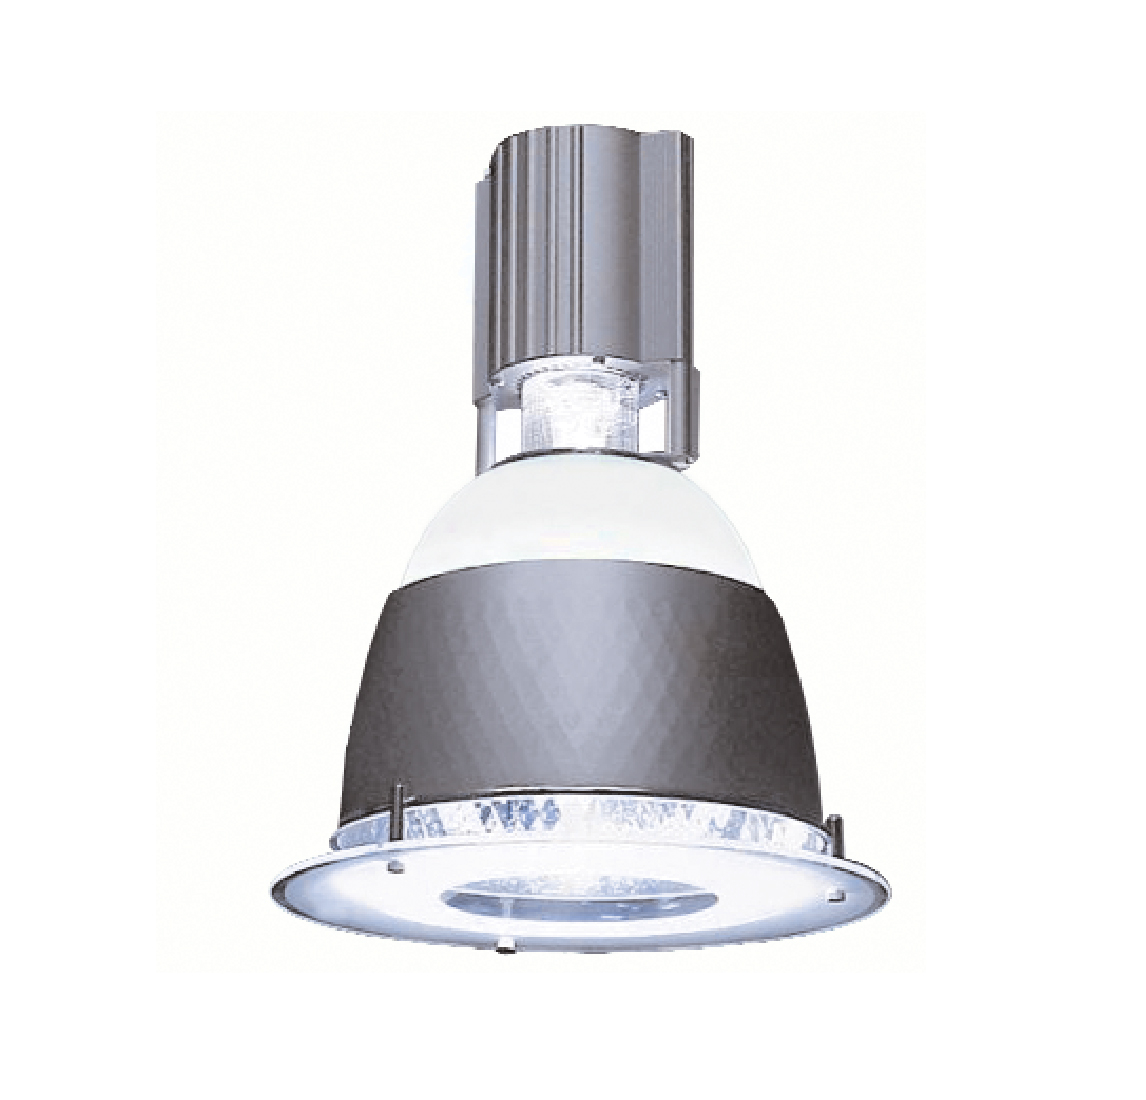 Alcon lighting santorini 8010 architectural high bay fluorescent alcon lighting alta ii 8013 2 hybrid fluorescent metal halide led 14 diameter industrial commercial lighting round pendant aloadofball Images